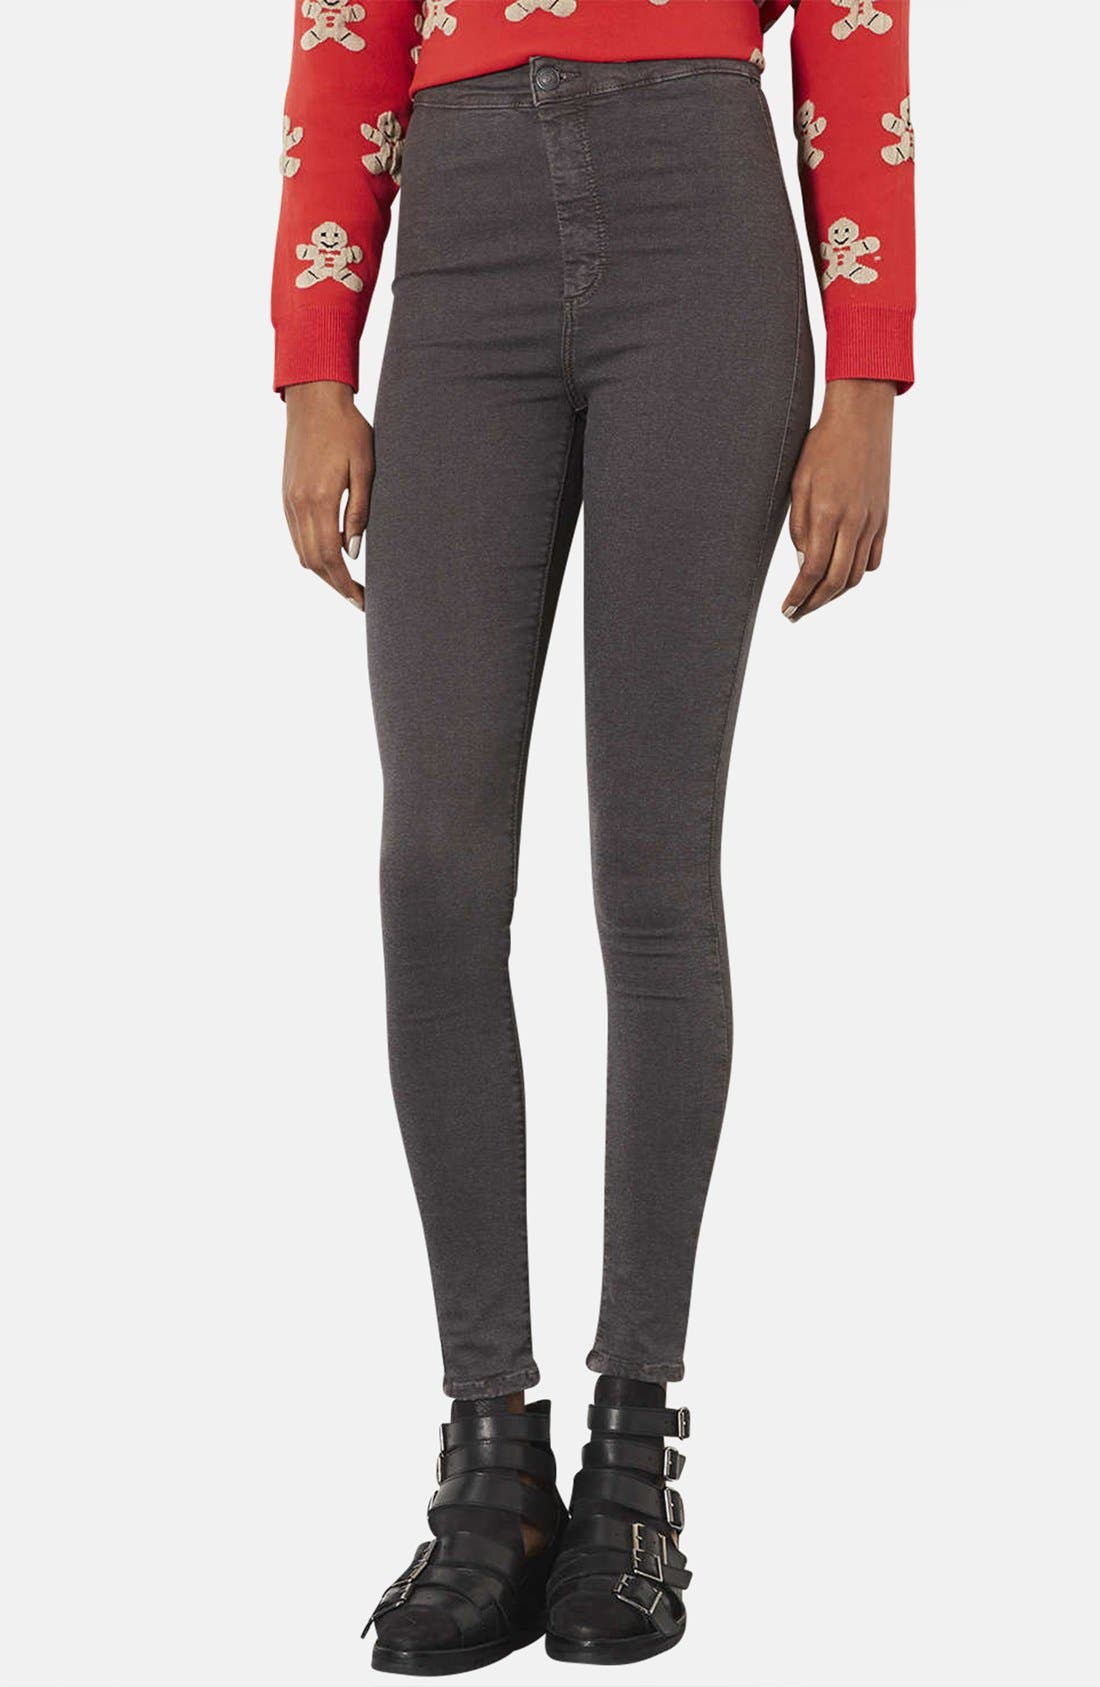 Alternate Image 1 Selected - Topshop Moto 'Joni' High Rise Skinny Jeans (Regular & Short)